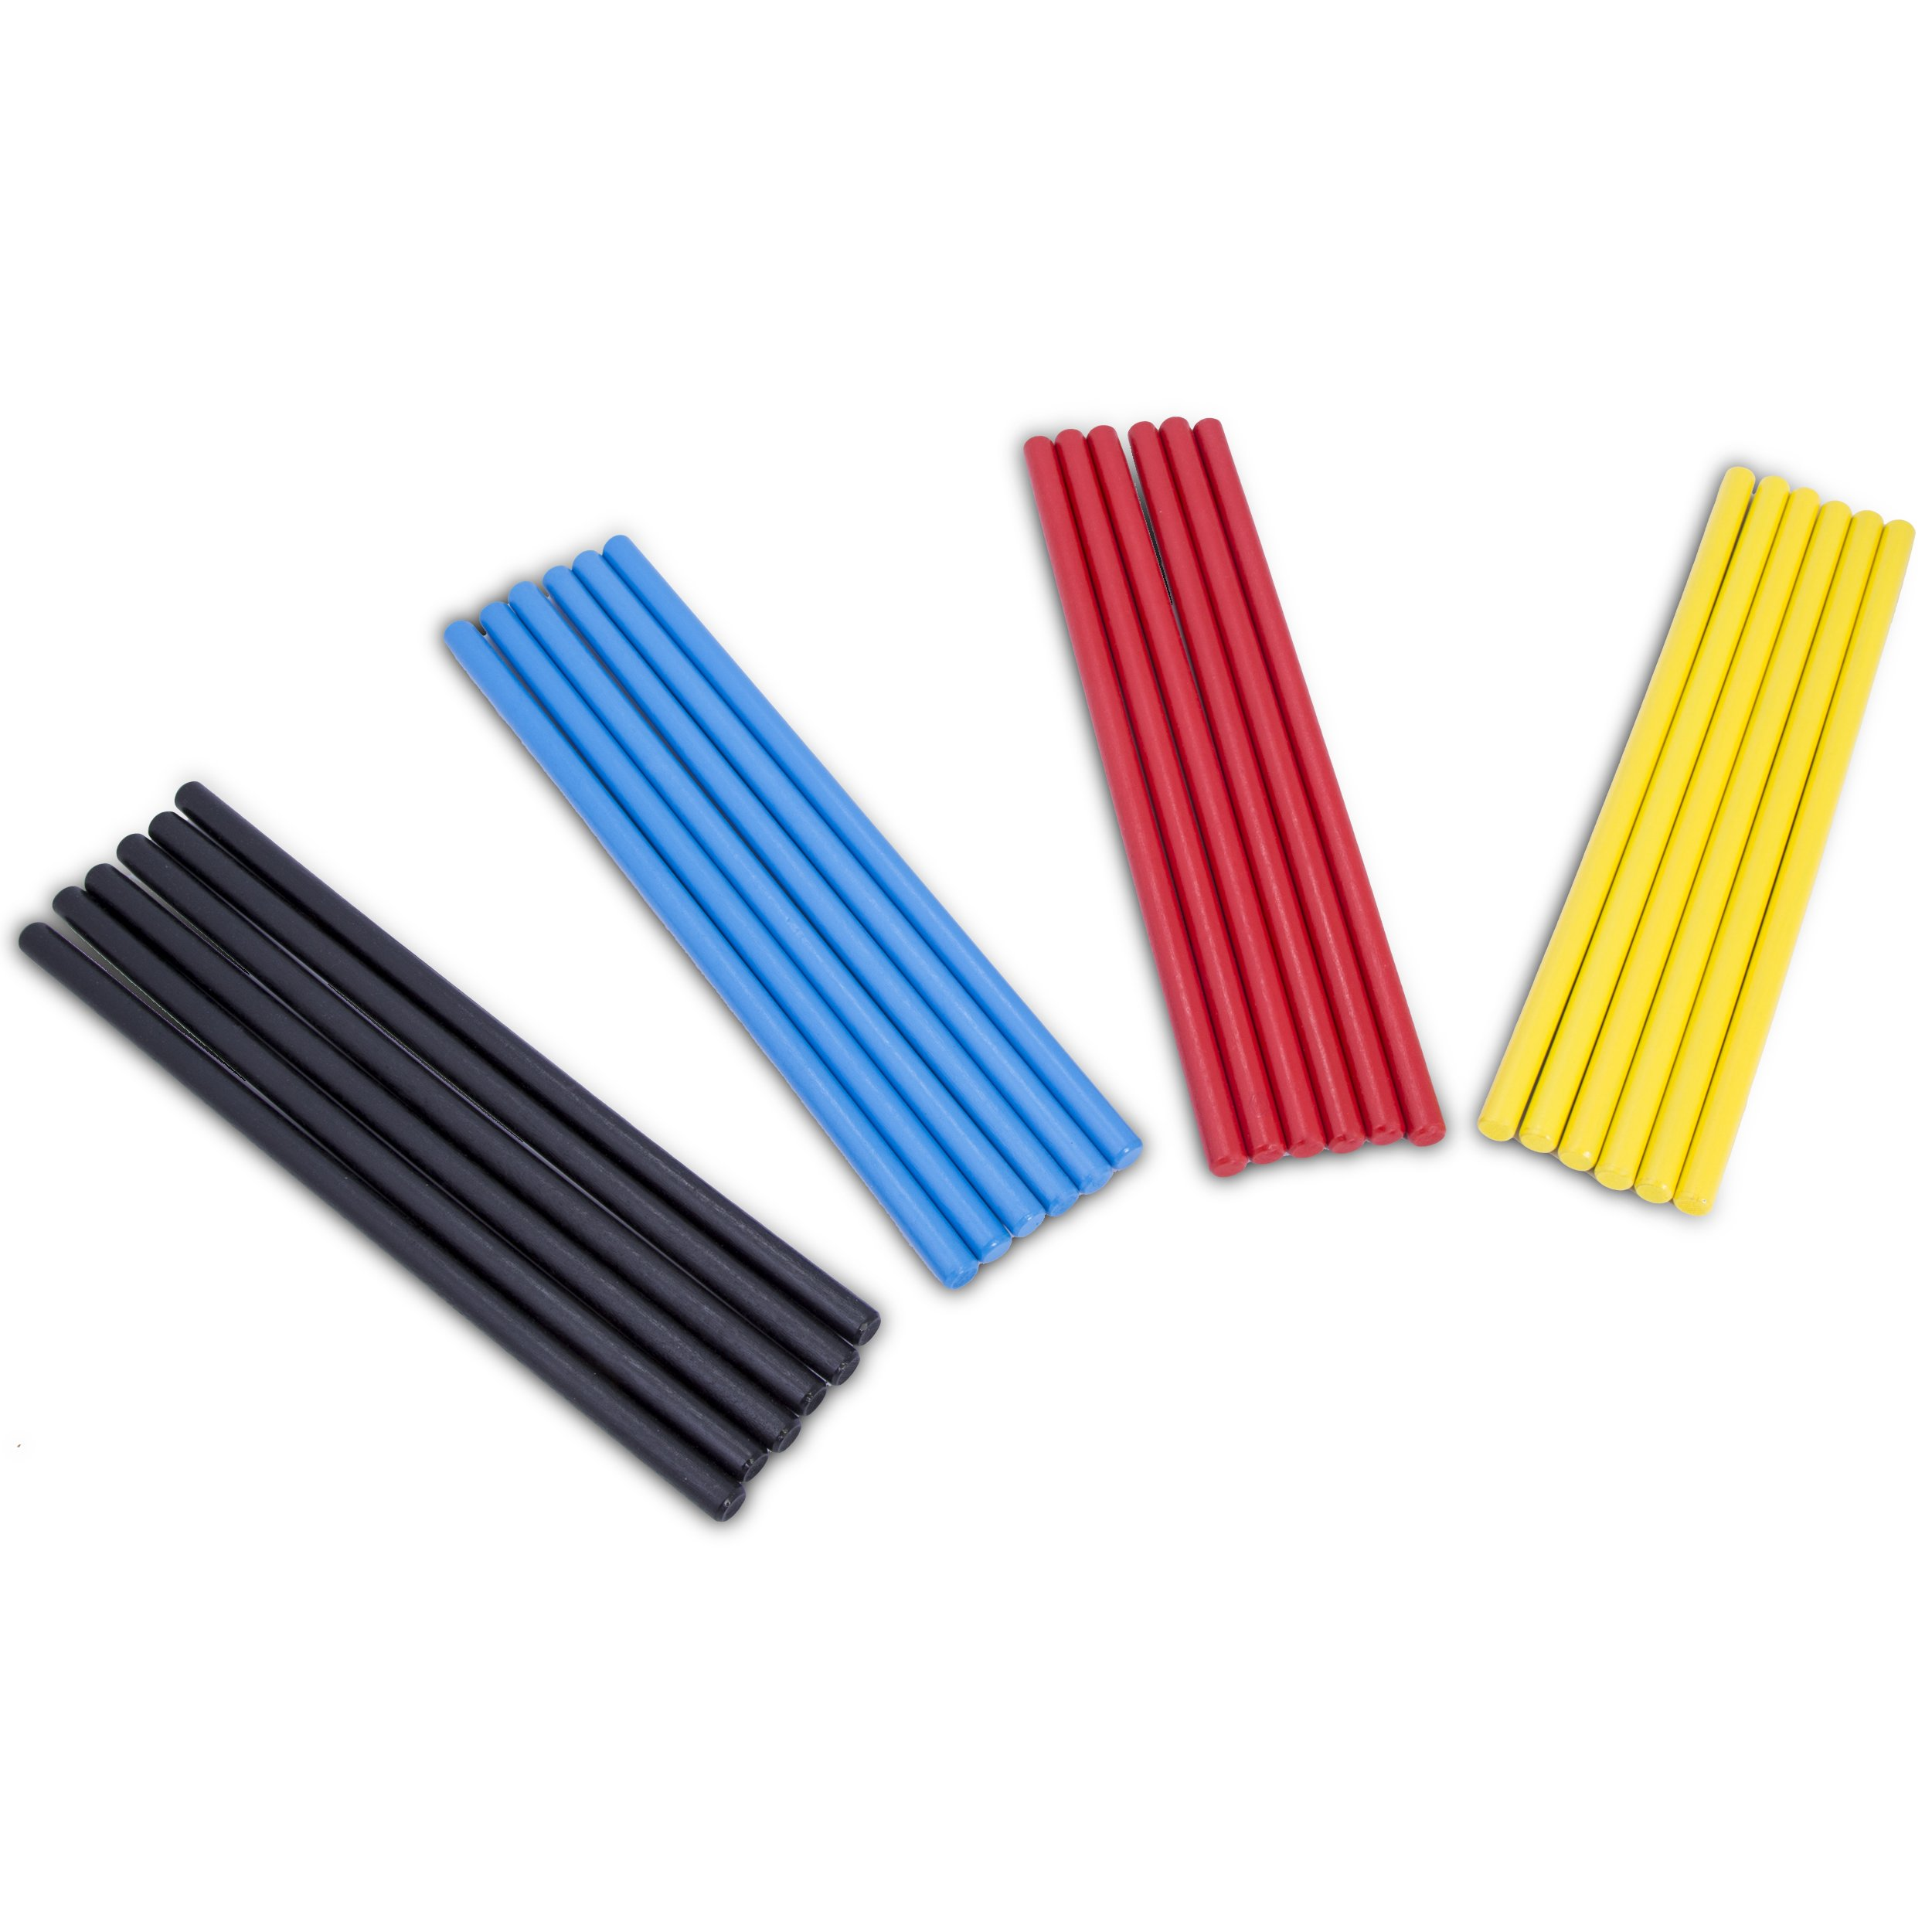 Rhythm Music Lummi Sticks - 24 Pack With Four Different Colors - Enjoyable and Economic Way To Teach Kids and Children Rhythm And Music In The Classroom by Masco Toys